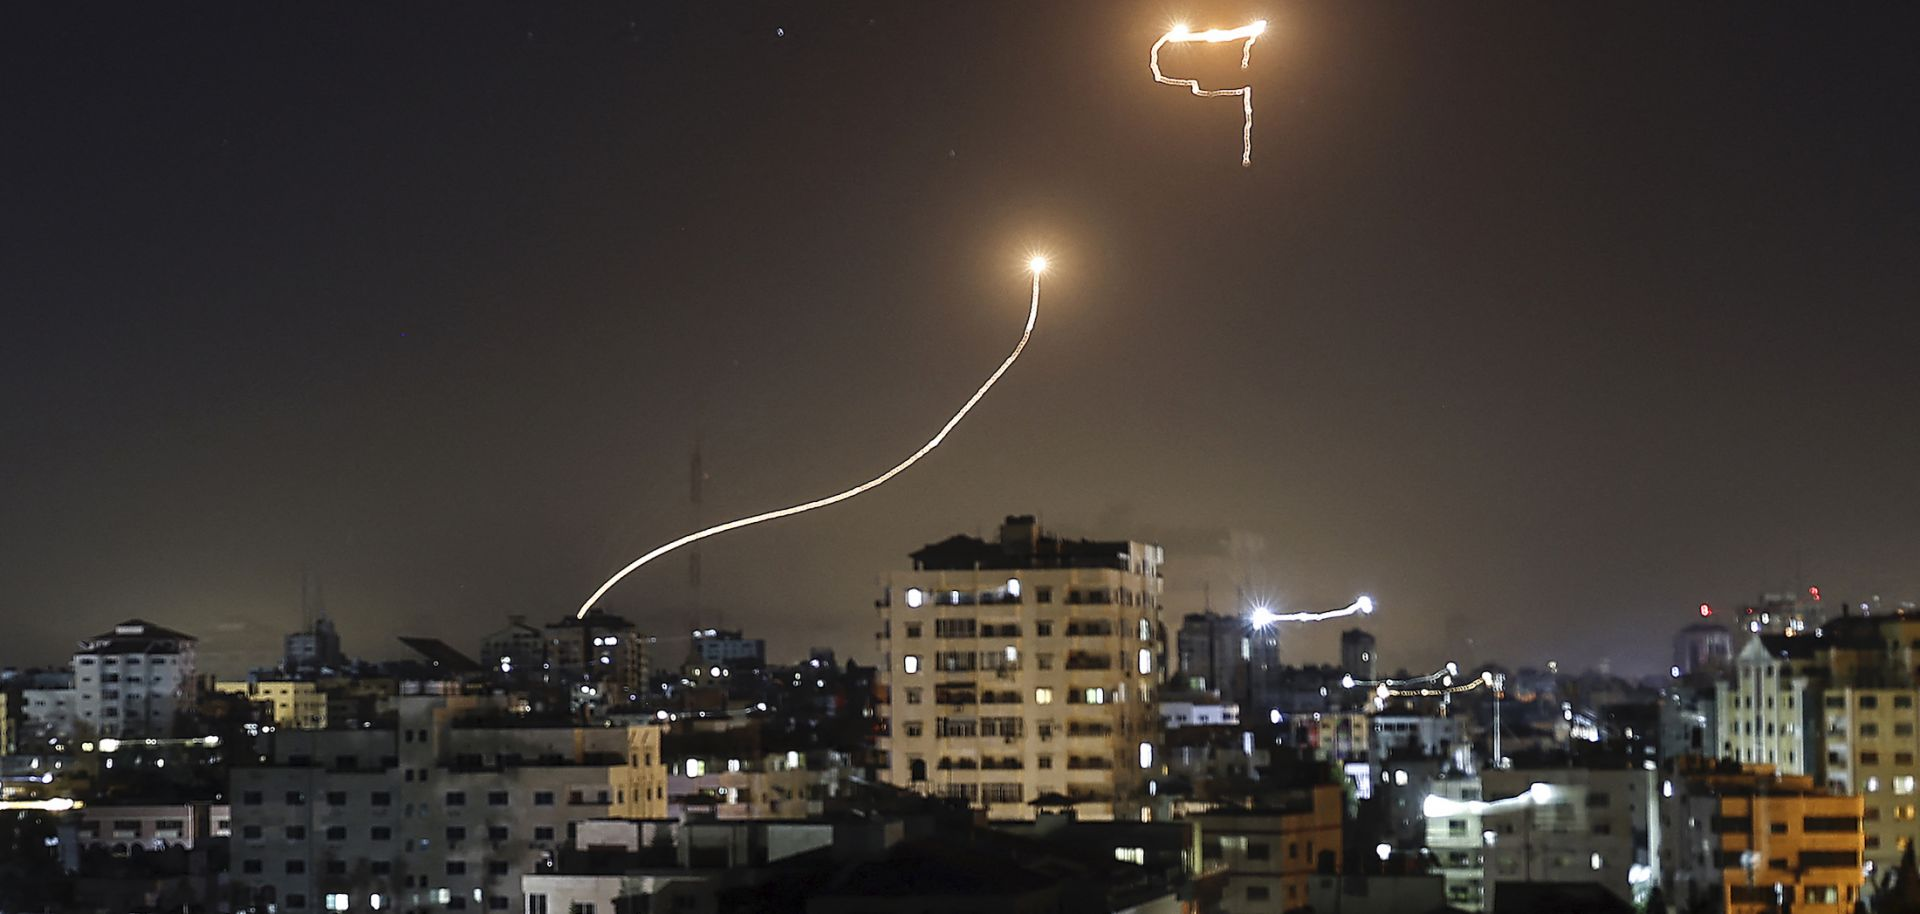 A streak of light appears as Israel's Iron Dome anti-missile system intercepts rockets on May 16, 2021, launched from the Gaza Strip.